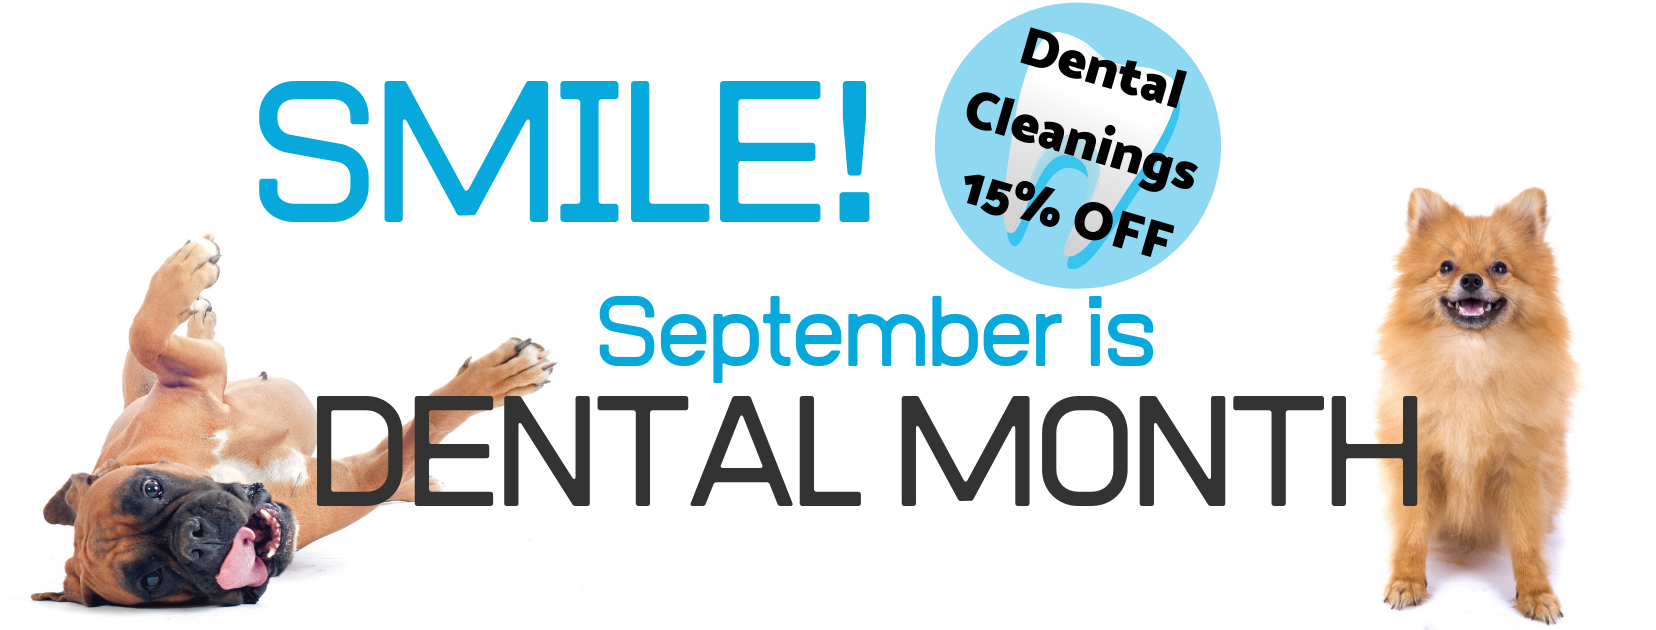 September dental month